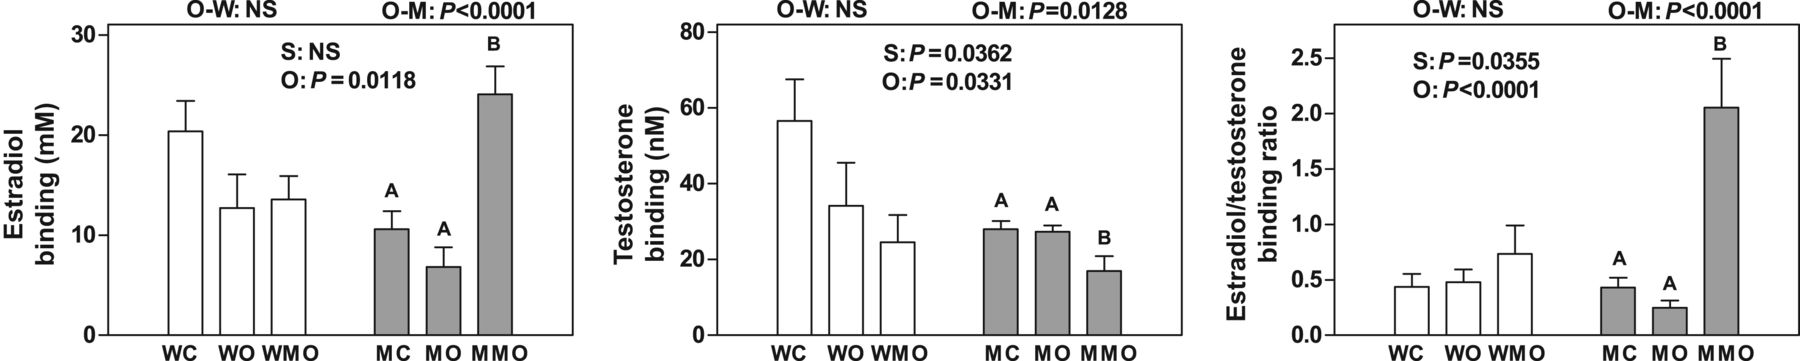 Modulation of SHBG binding to testosterone and estradiol by